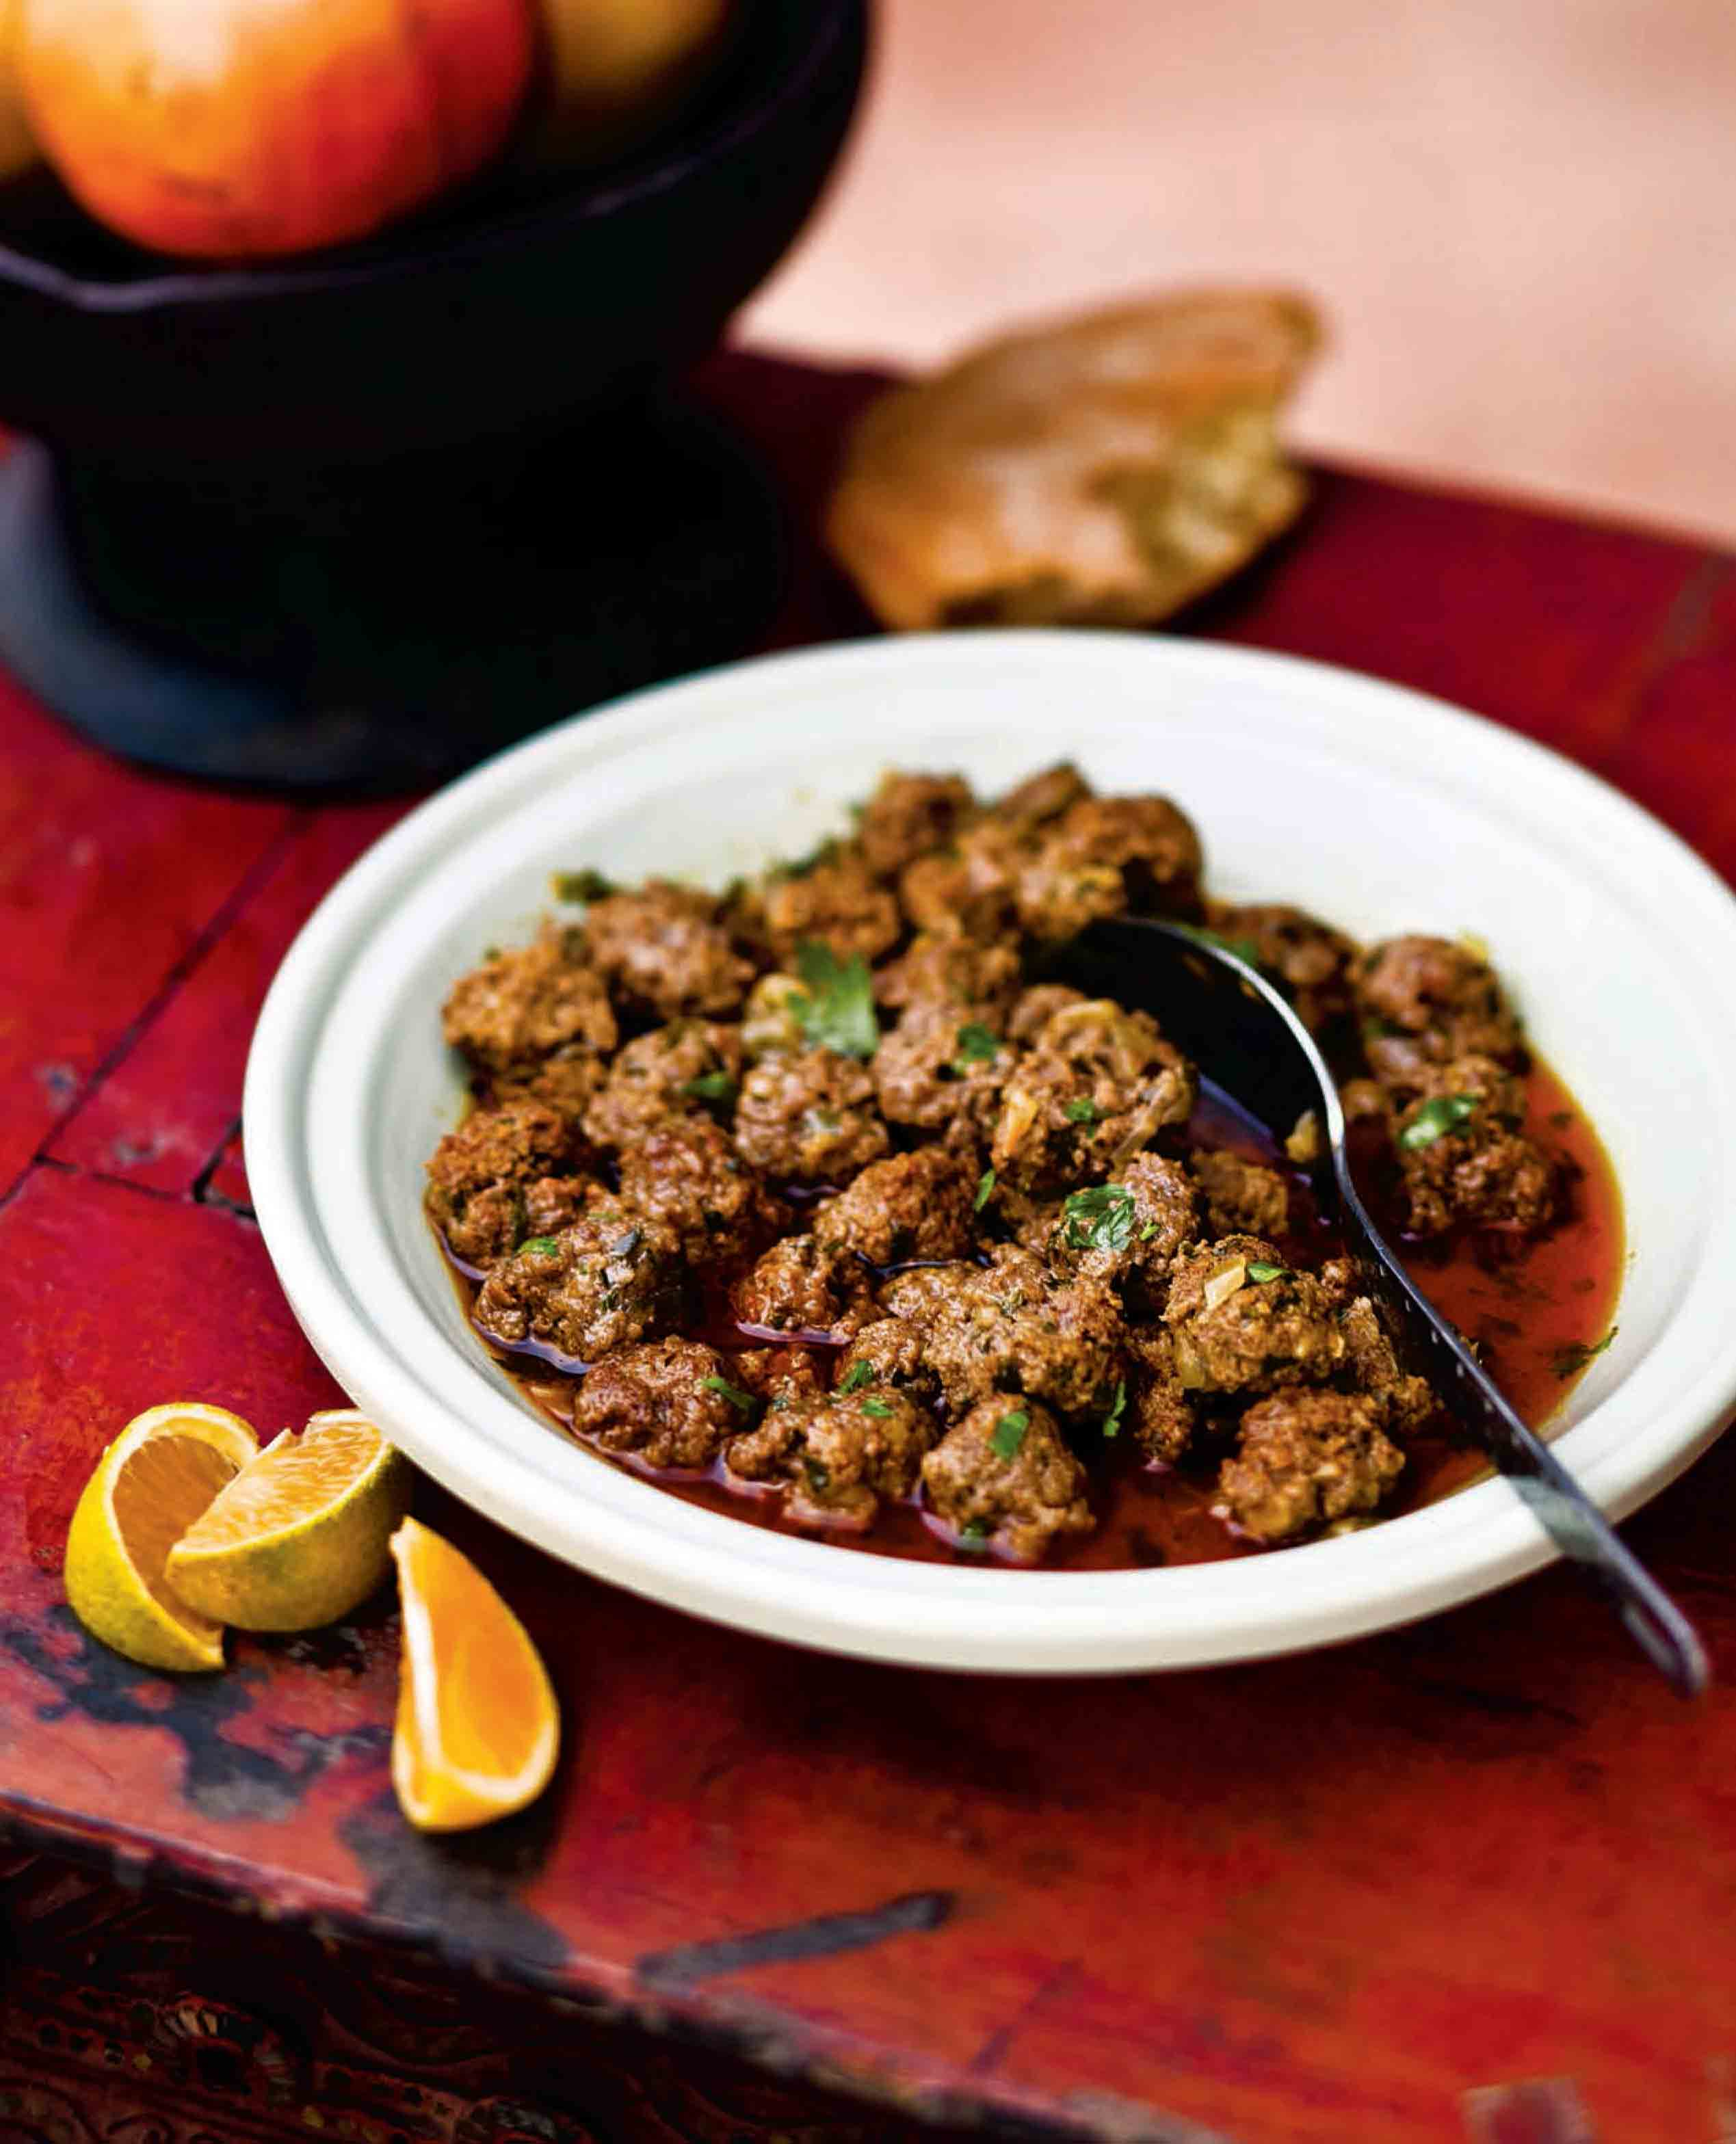 Kefta tagine with herbs, spices and lemon